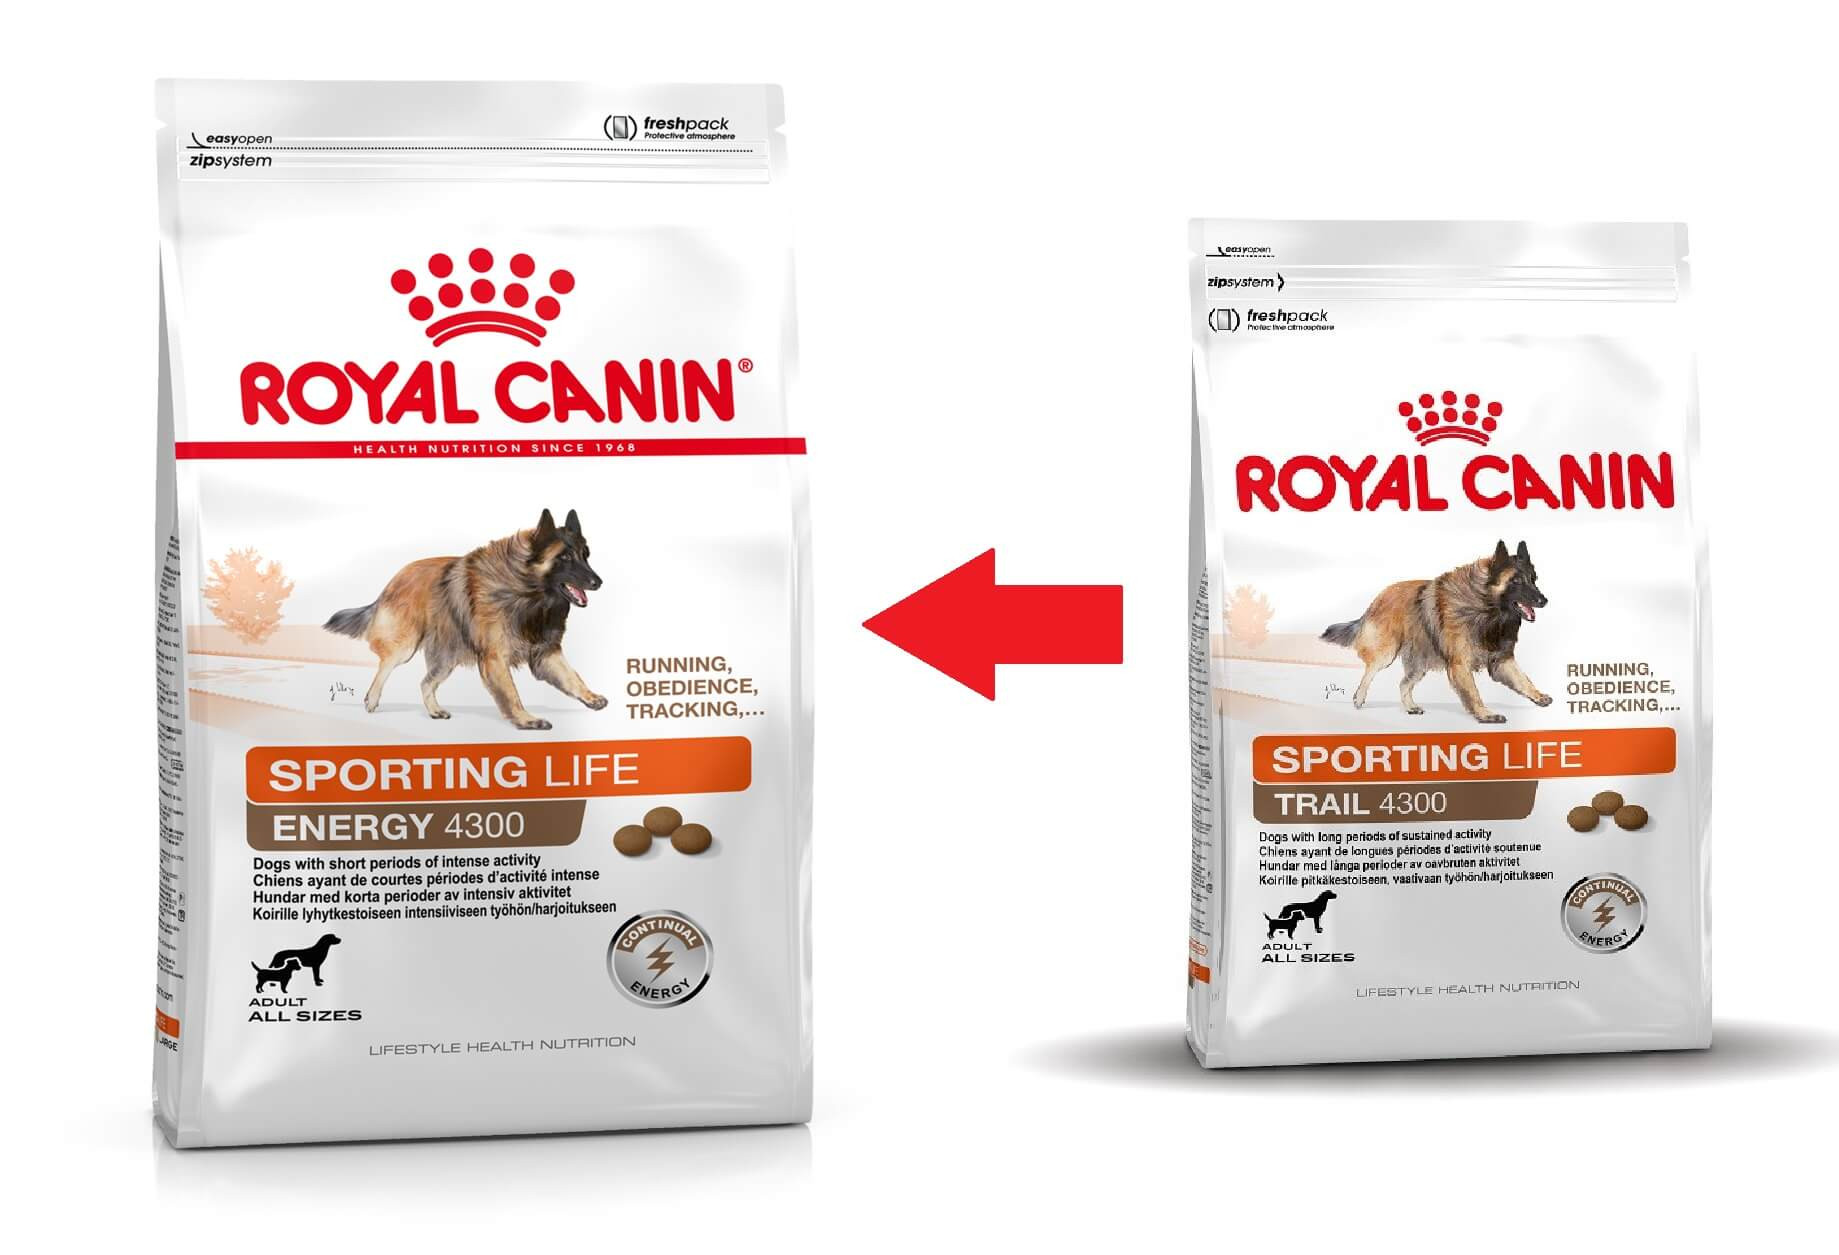 Royal Canin Sporting Life Trail 4300 hondenvoer